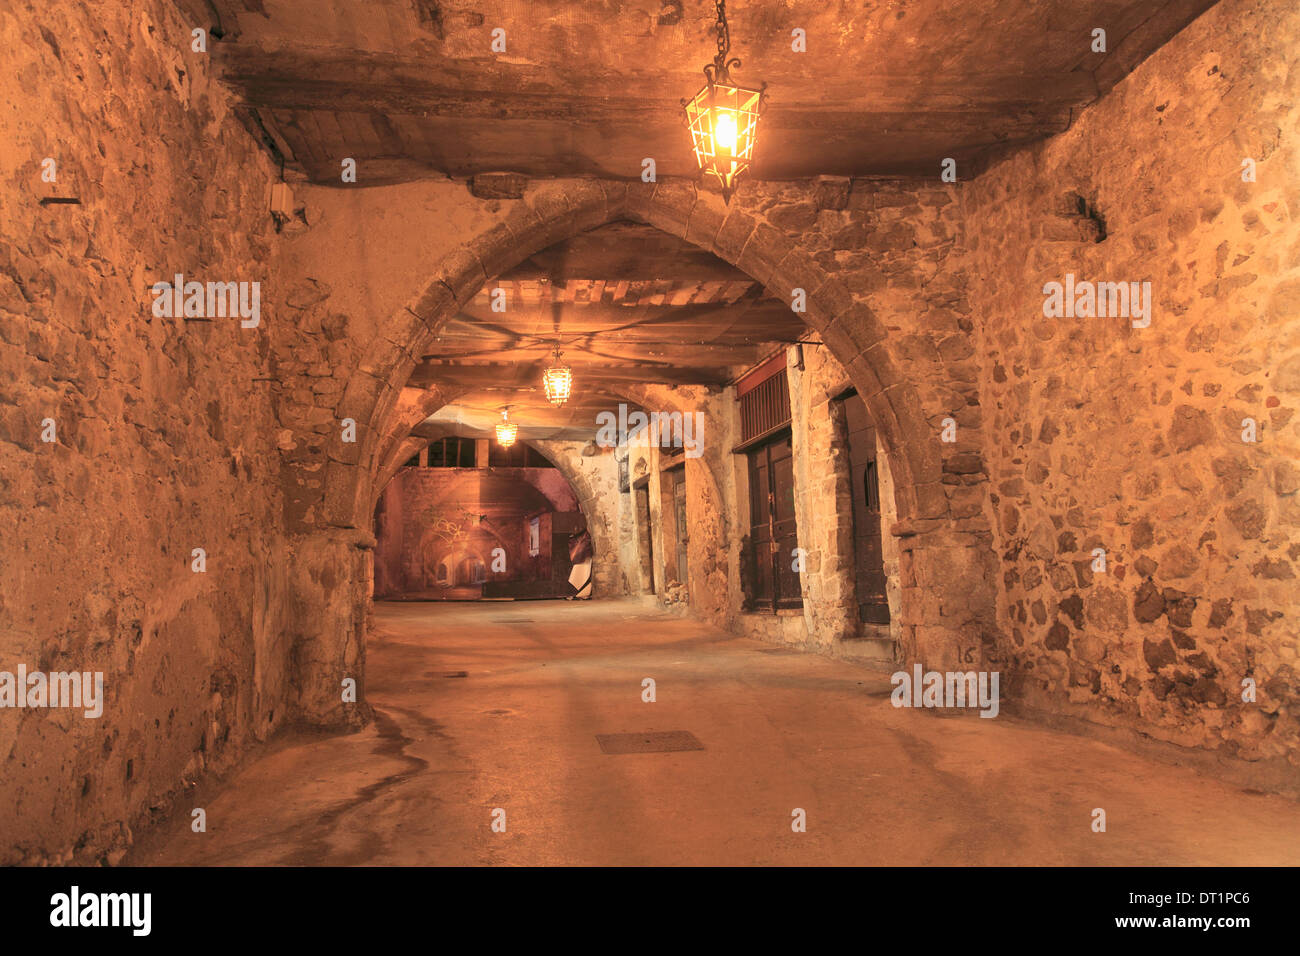 Rue Obscure (Dark Passage) datring from the 13th century, Villefranche sur Mer, Cote d'Azur, French Riviera, Provence, France - Stock Image